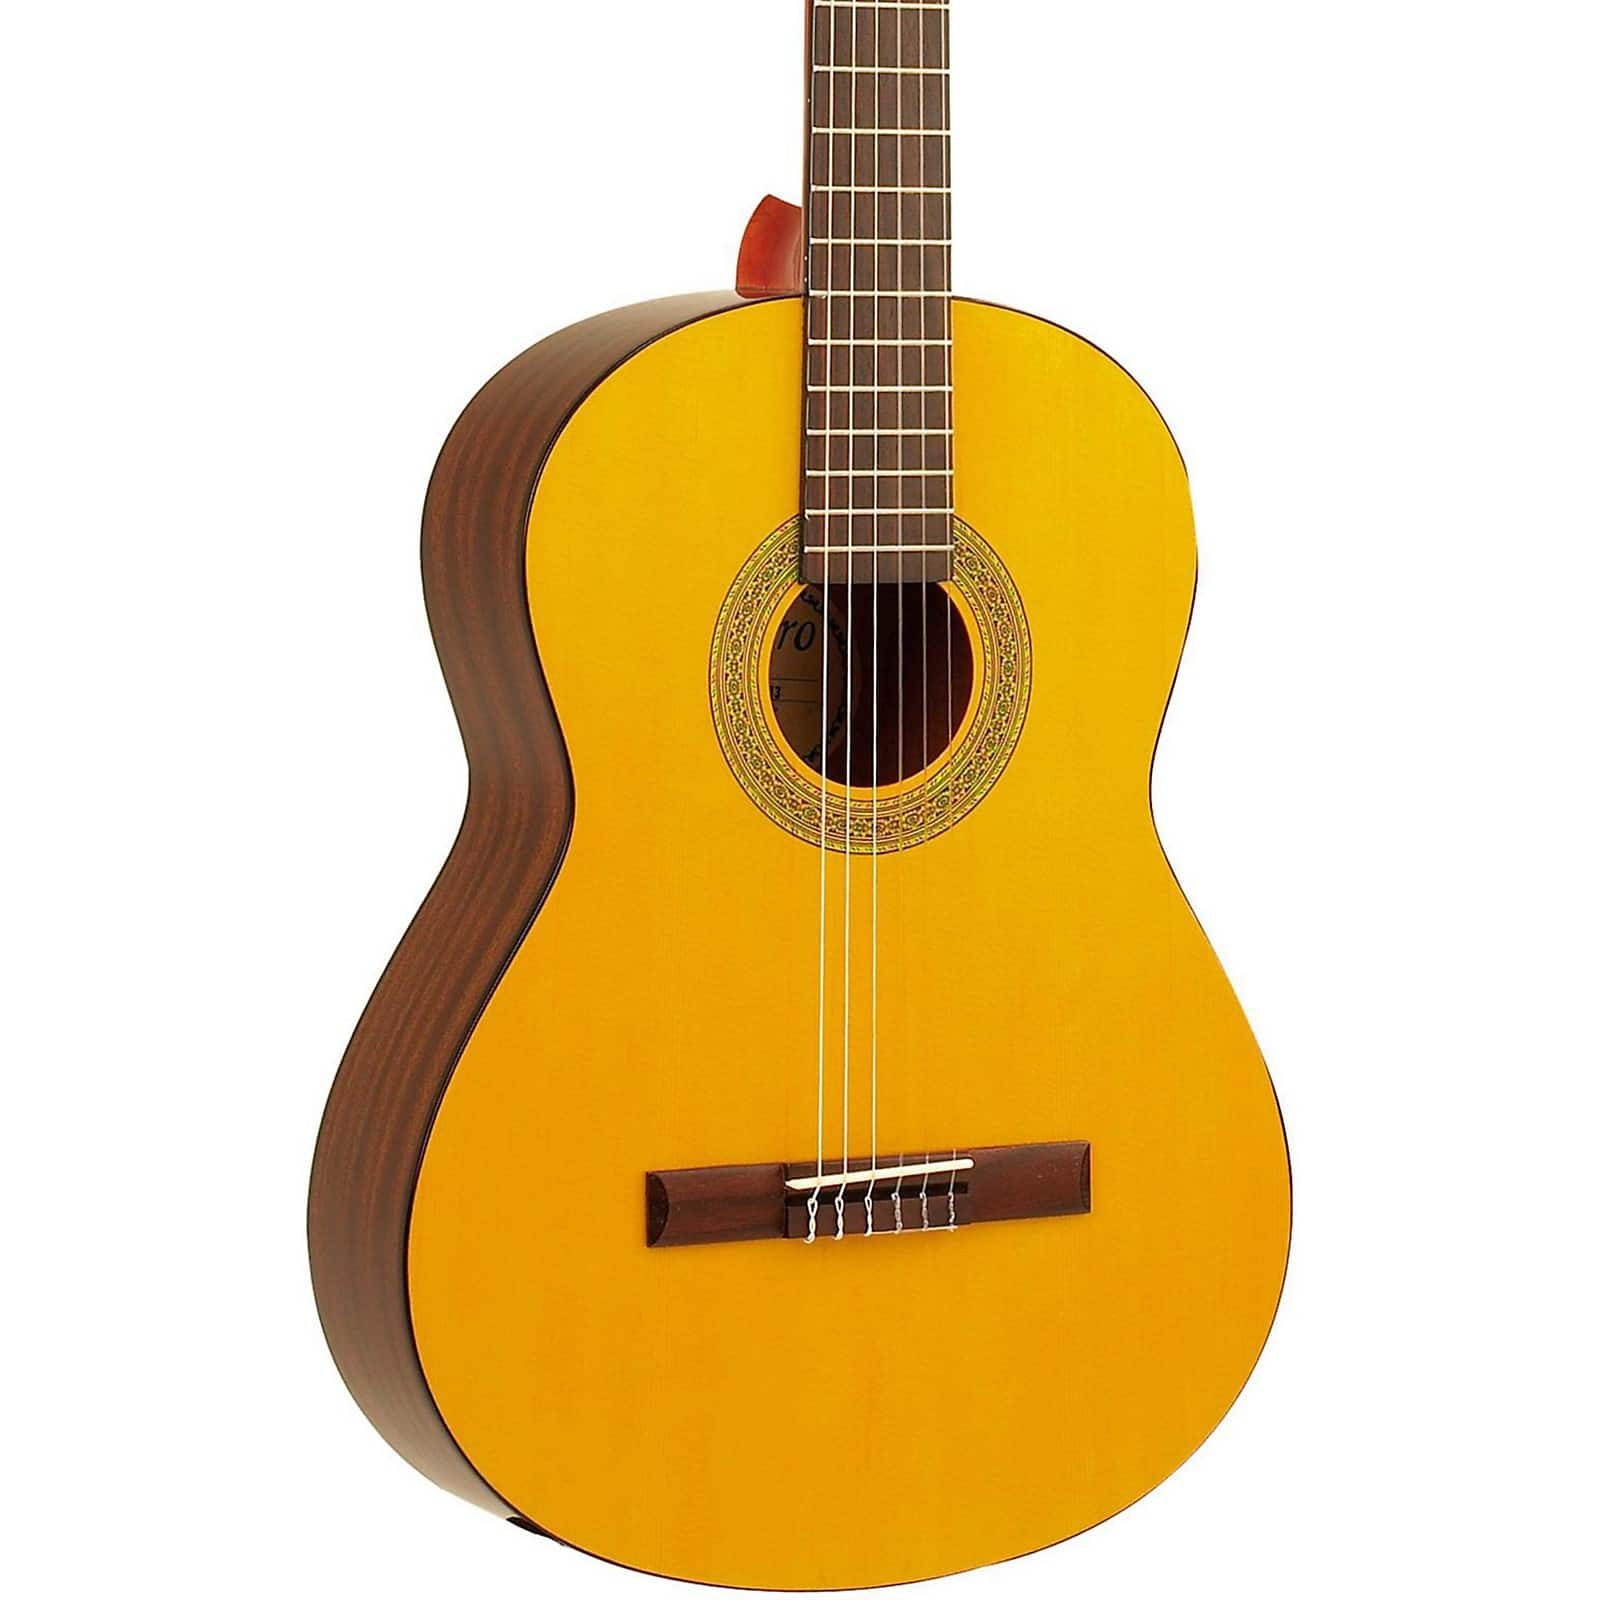 Lucero LC100 Classical Guitar Natural color $80 + Free Shipping